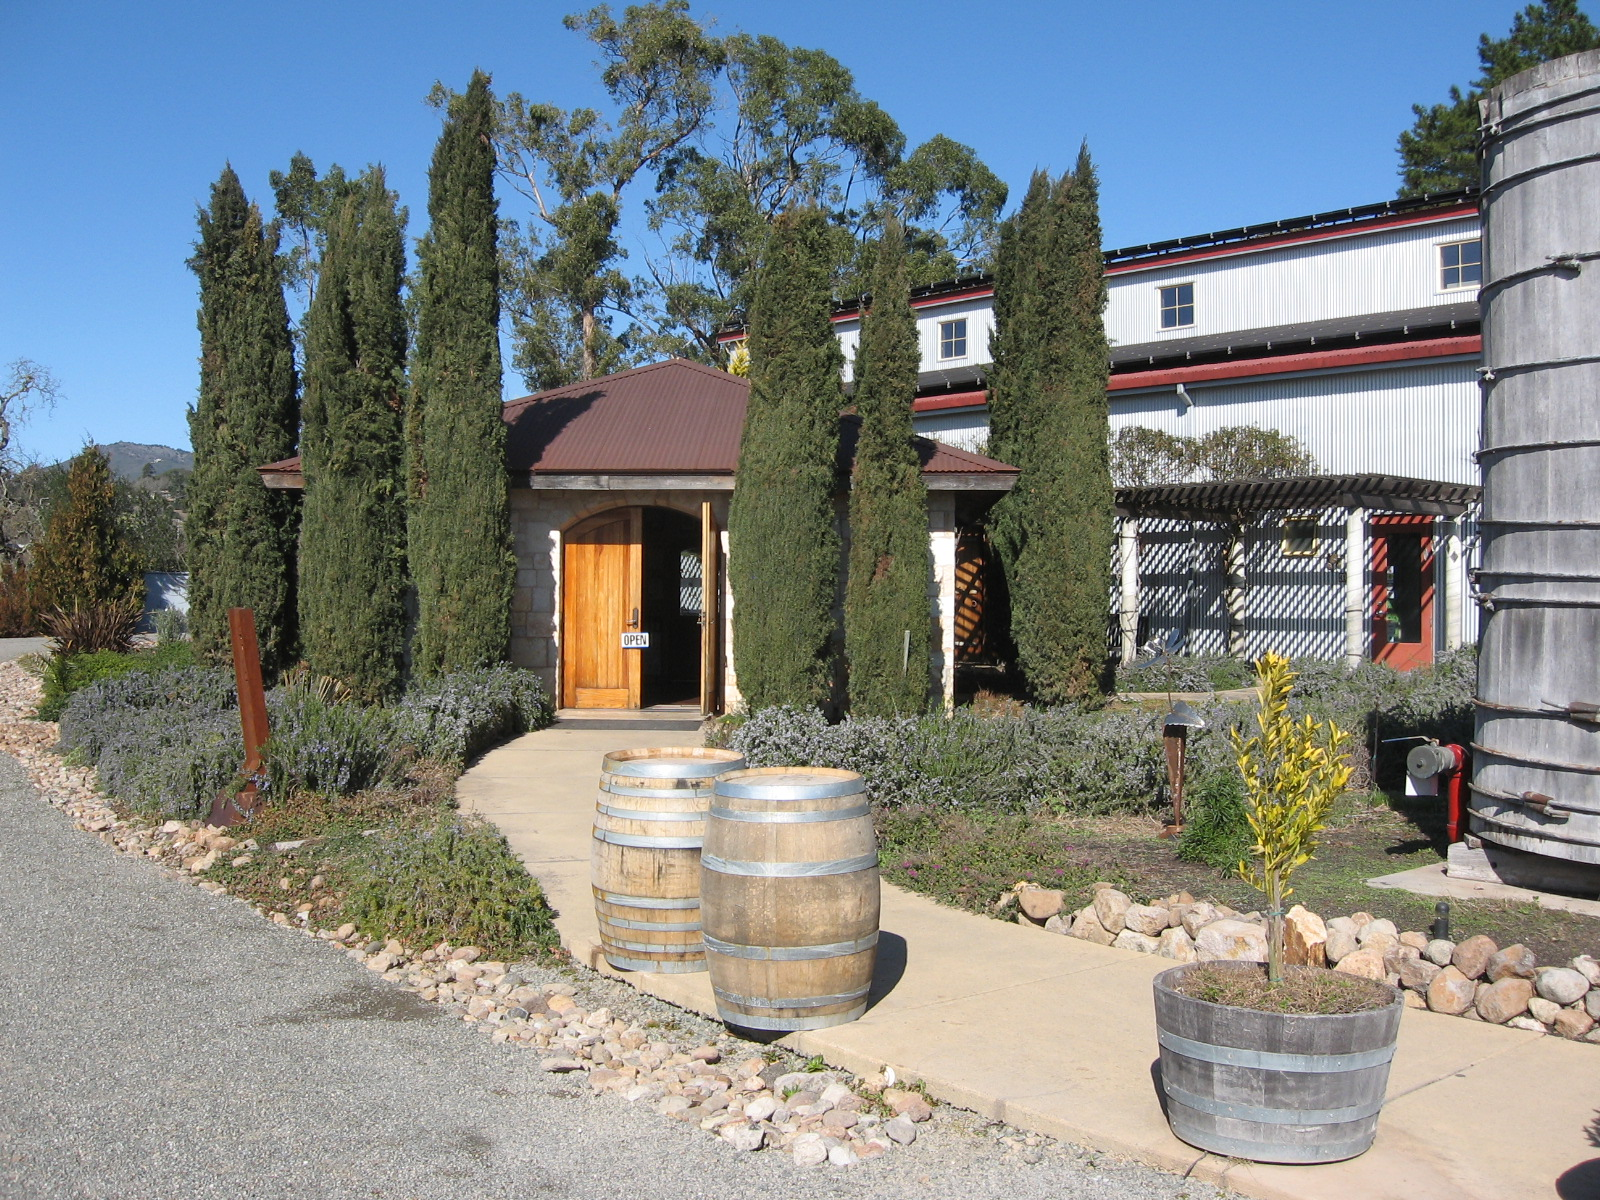 At the winery we were offered tastings of the Hagafen 2010 Clarinet Red Rhone Blend at $24 the Hagafen 2009 Crescendo Red Table Wine at $24 and the Hagafen ... & a hrefu003du0027http://bachtobacchus.blogspot.com/u0027u003eBach to Bacchus: Hagafen ...